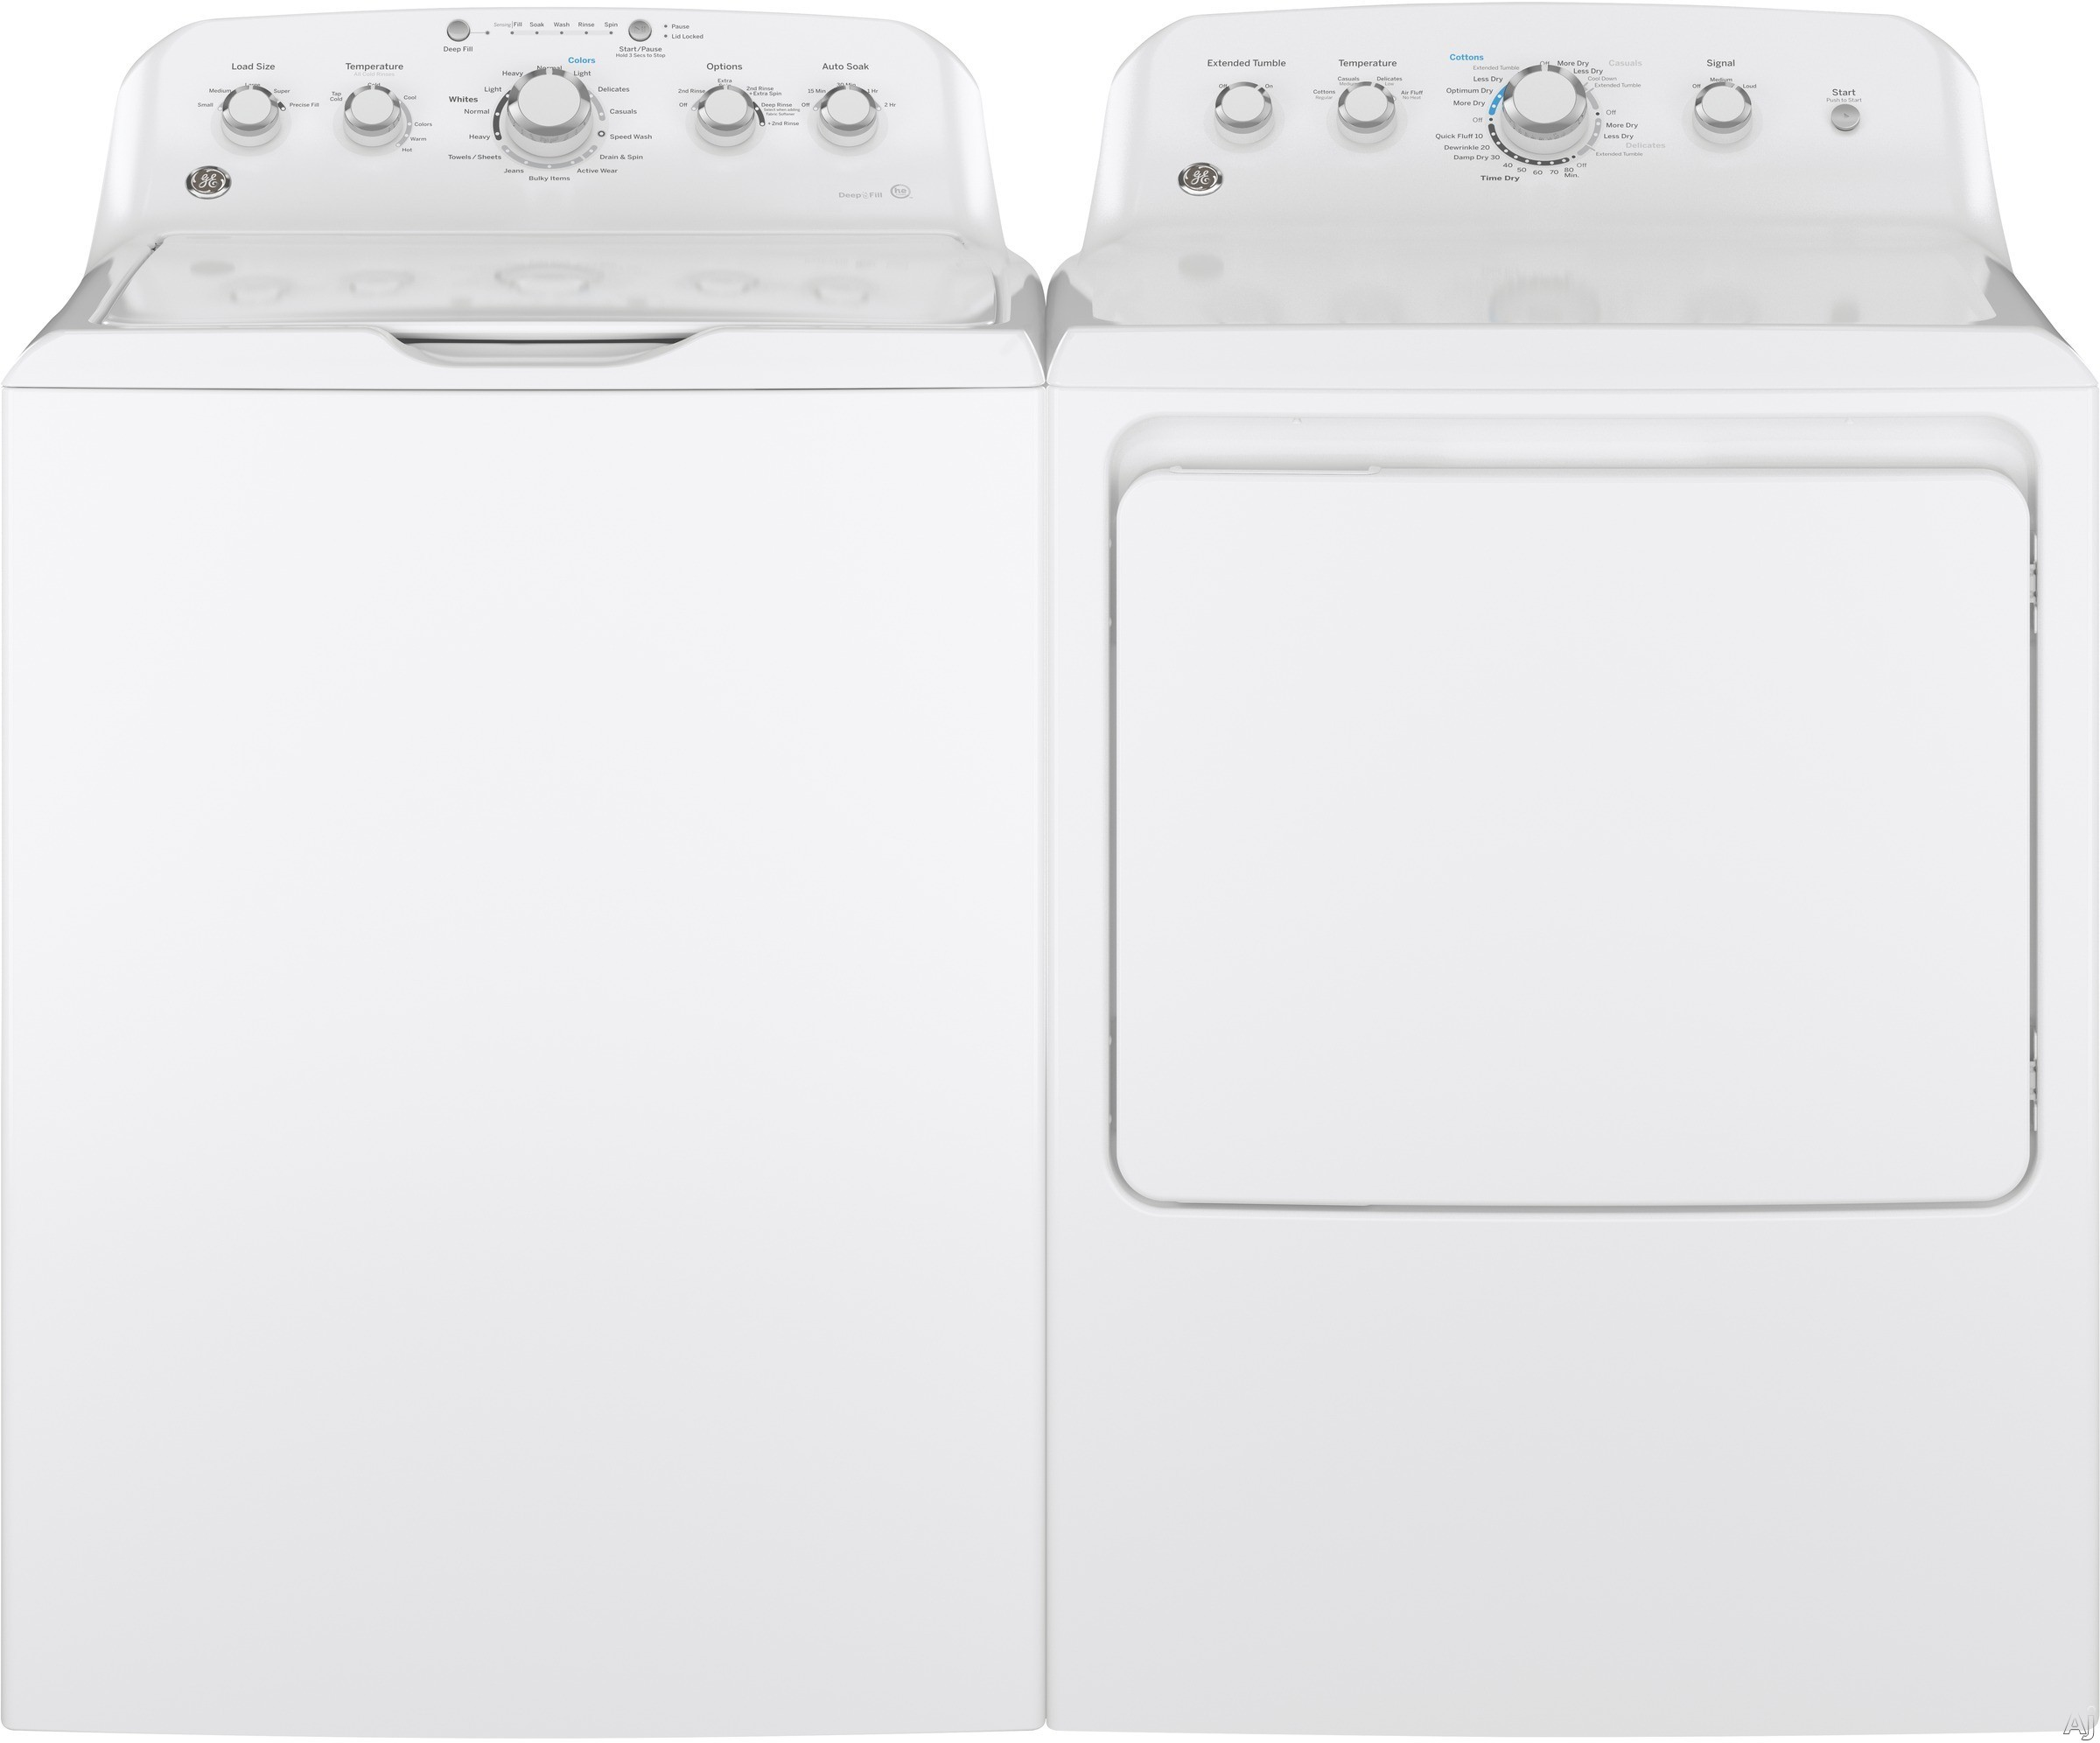 Washer And Dryer Dimensions Front Loading Ge Ge460tl Ge 460 Series Top Load Washer Dryer